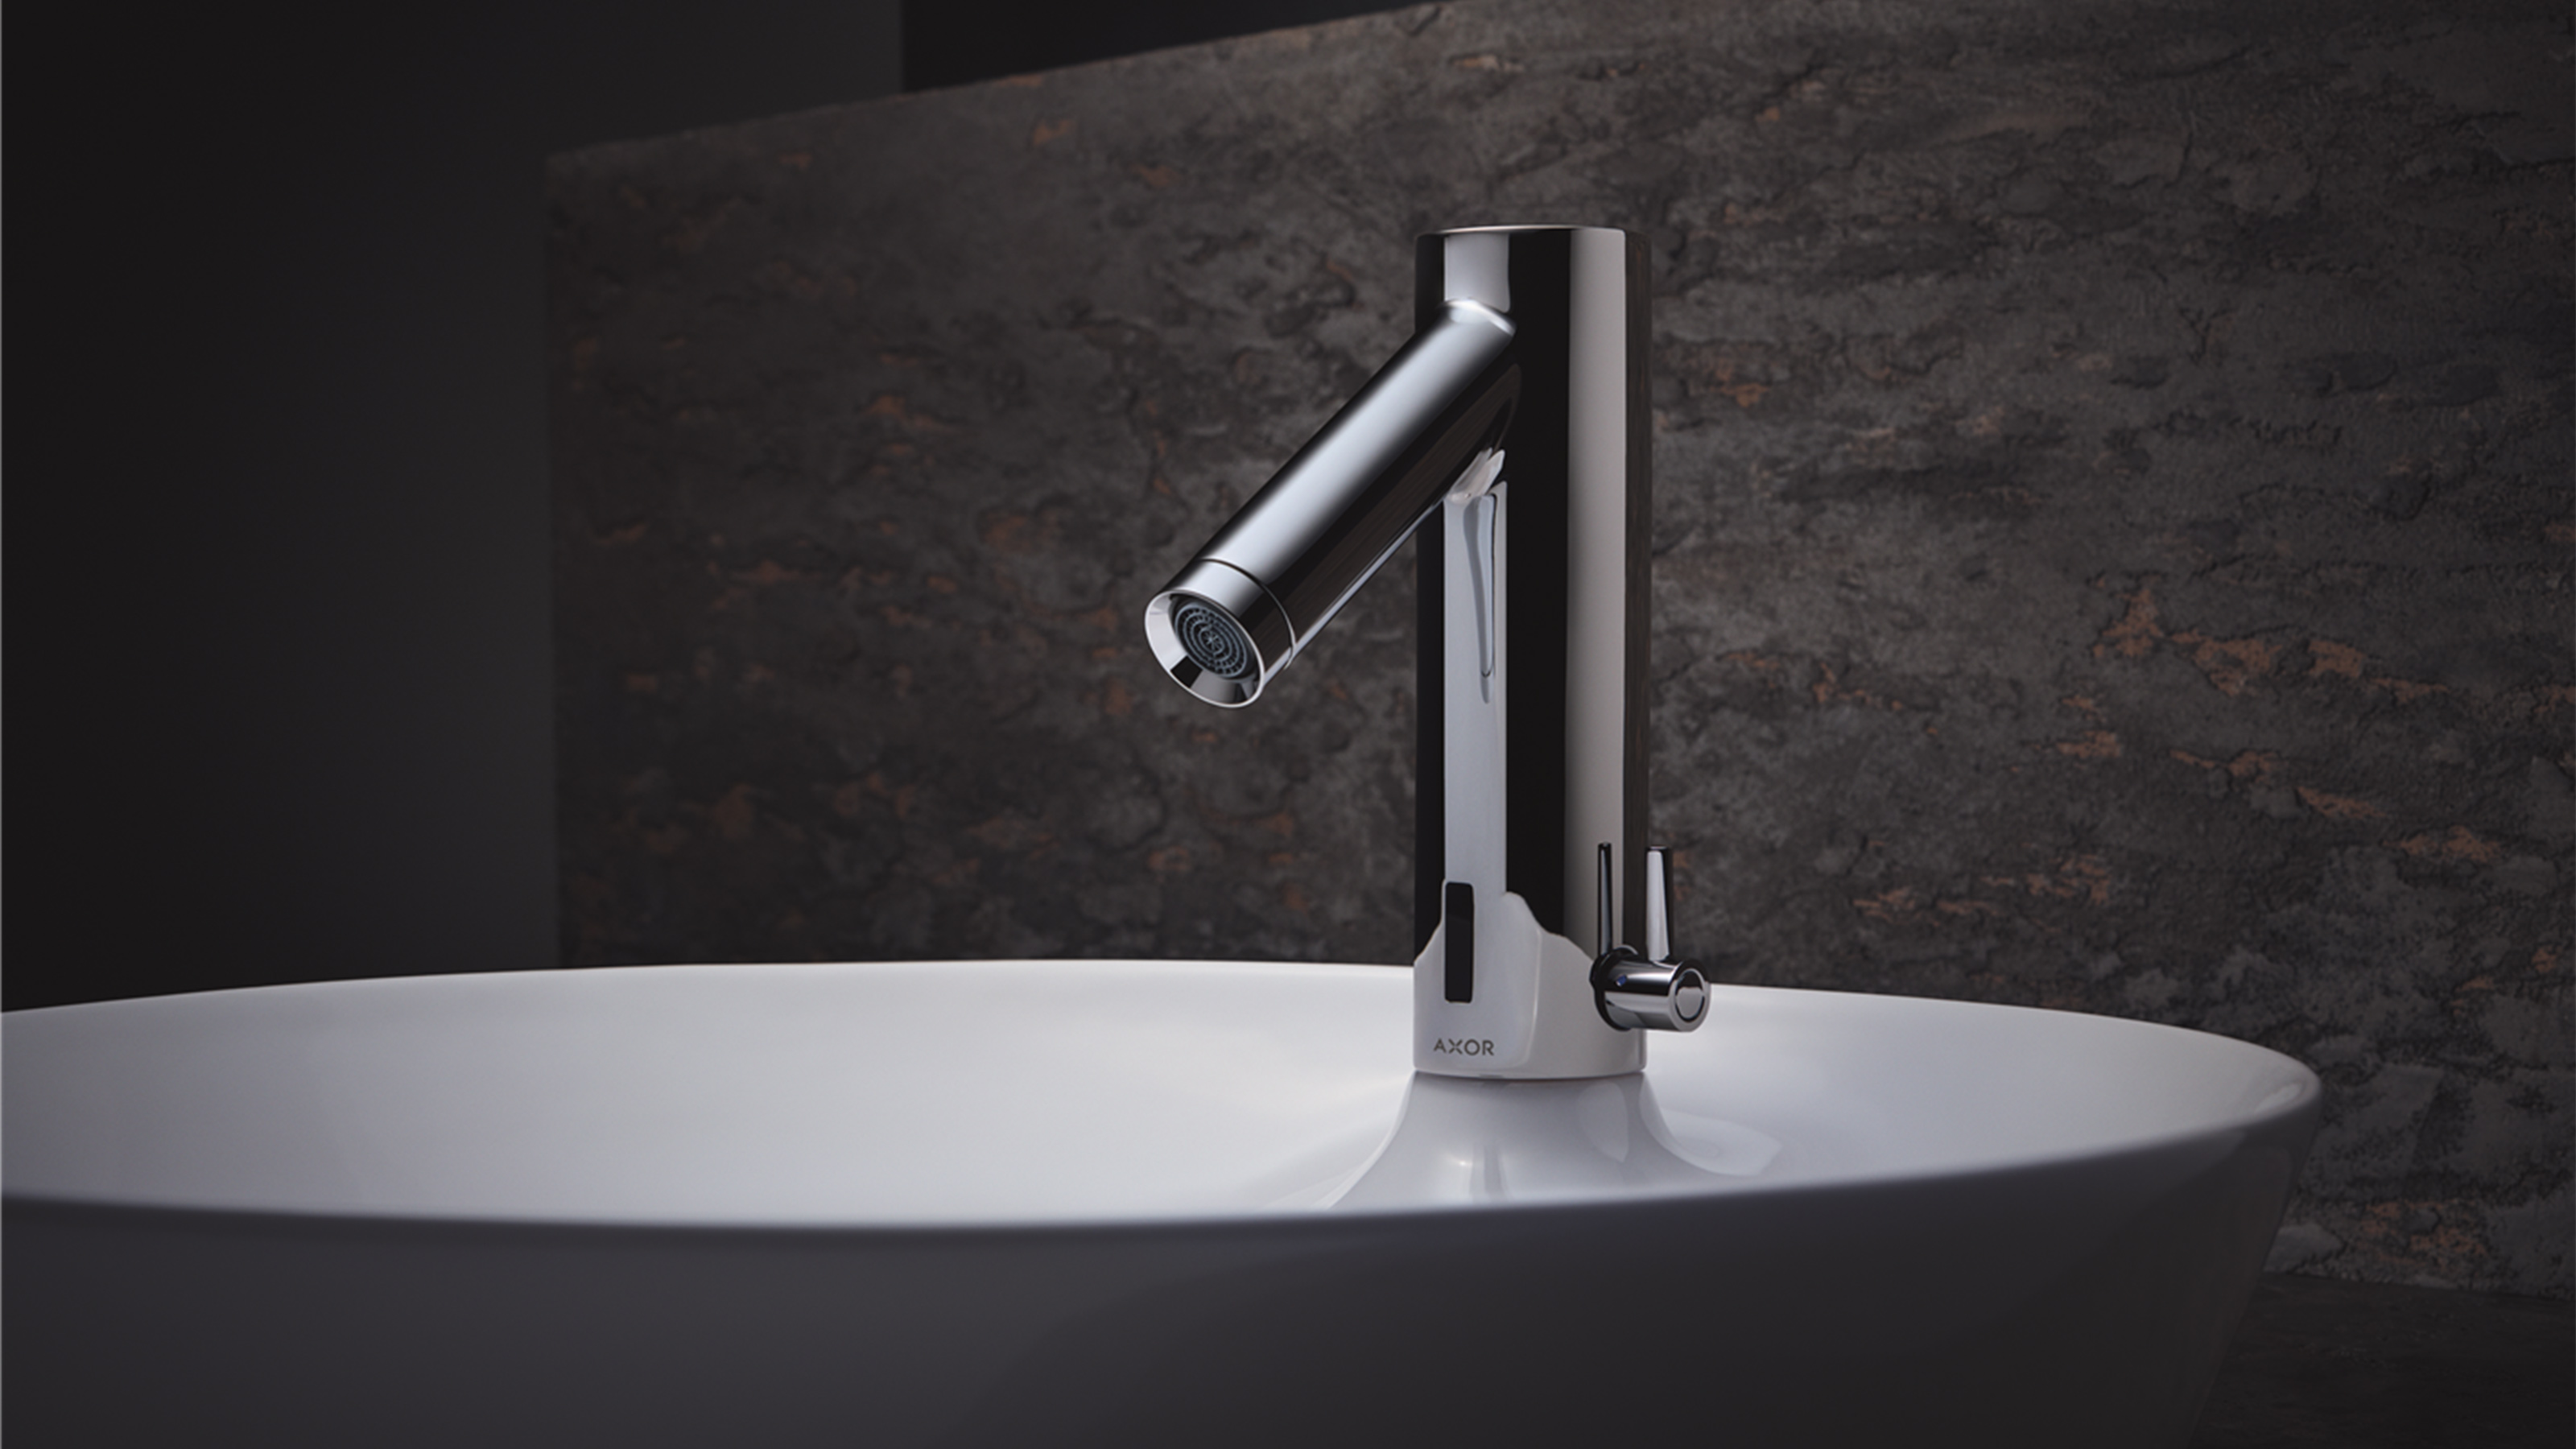 sensor controlled taps and faucets